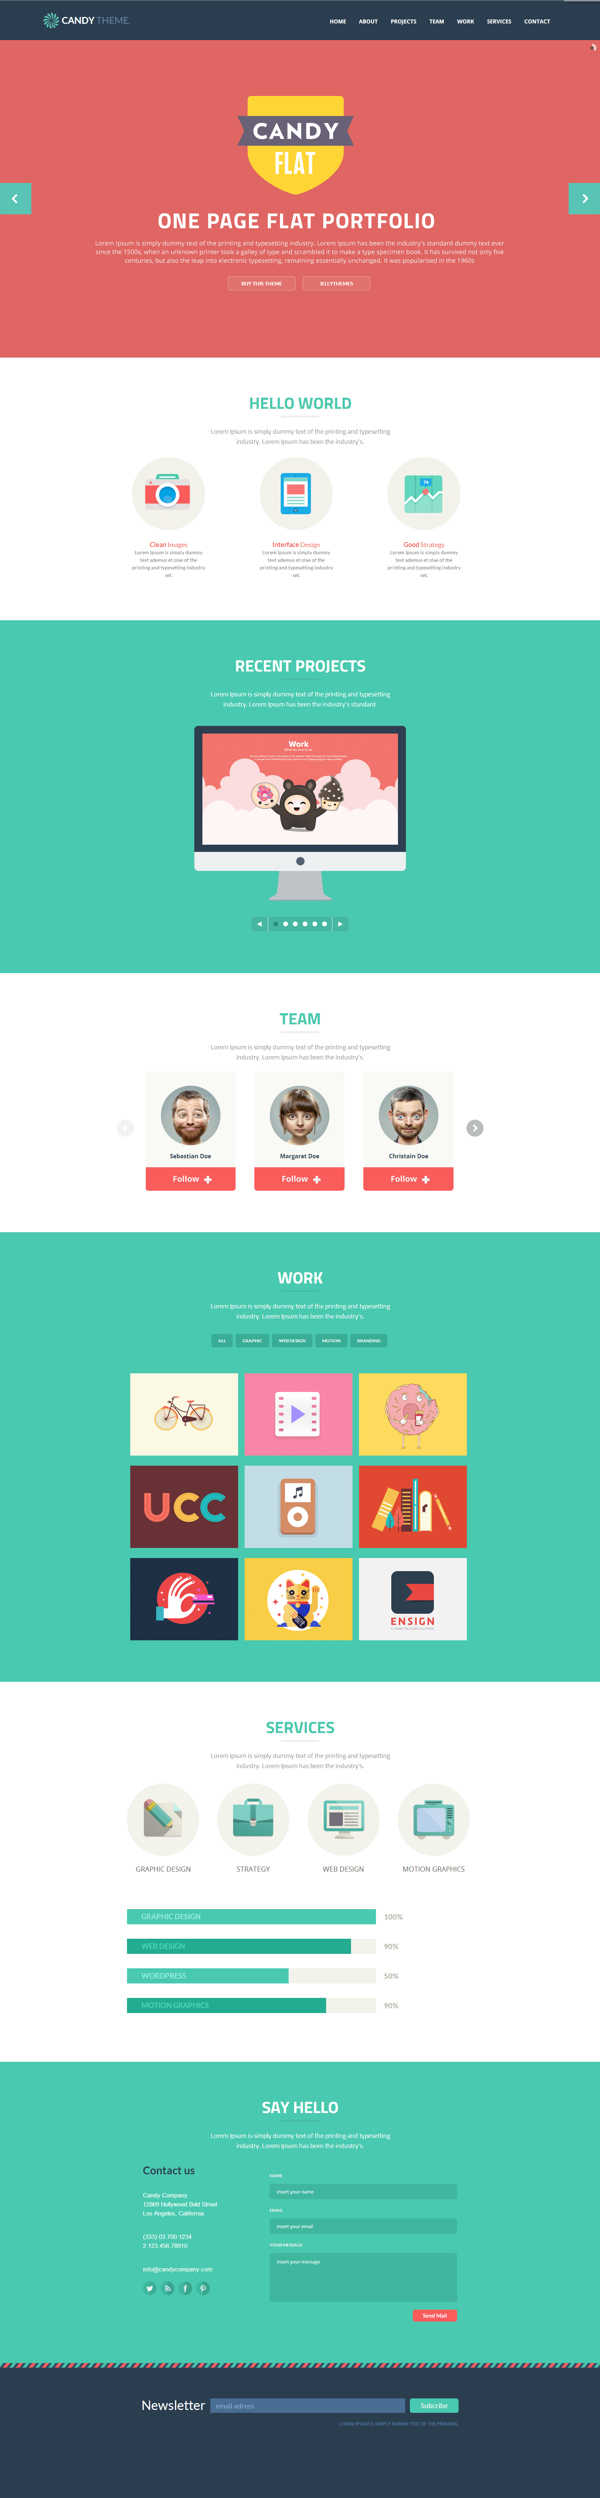 Weekly Web Design Inspiration #35 | Web design inspiration, Design ...